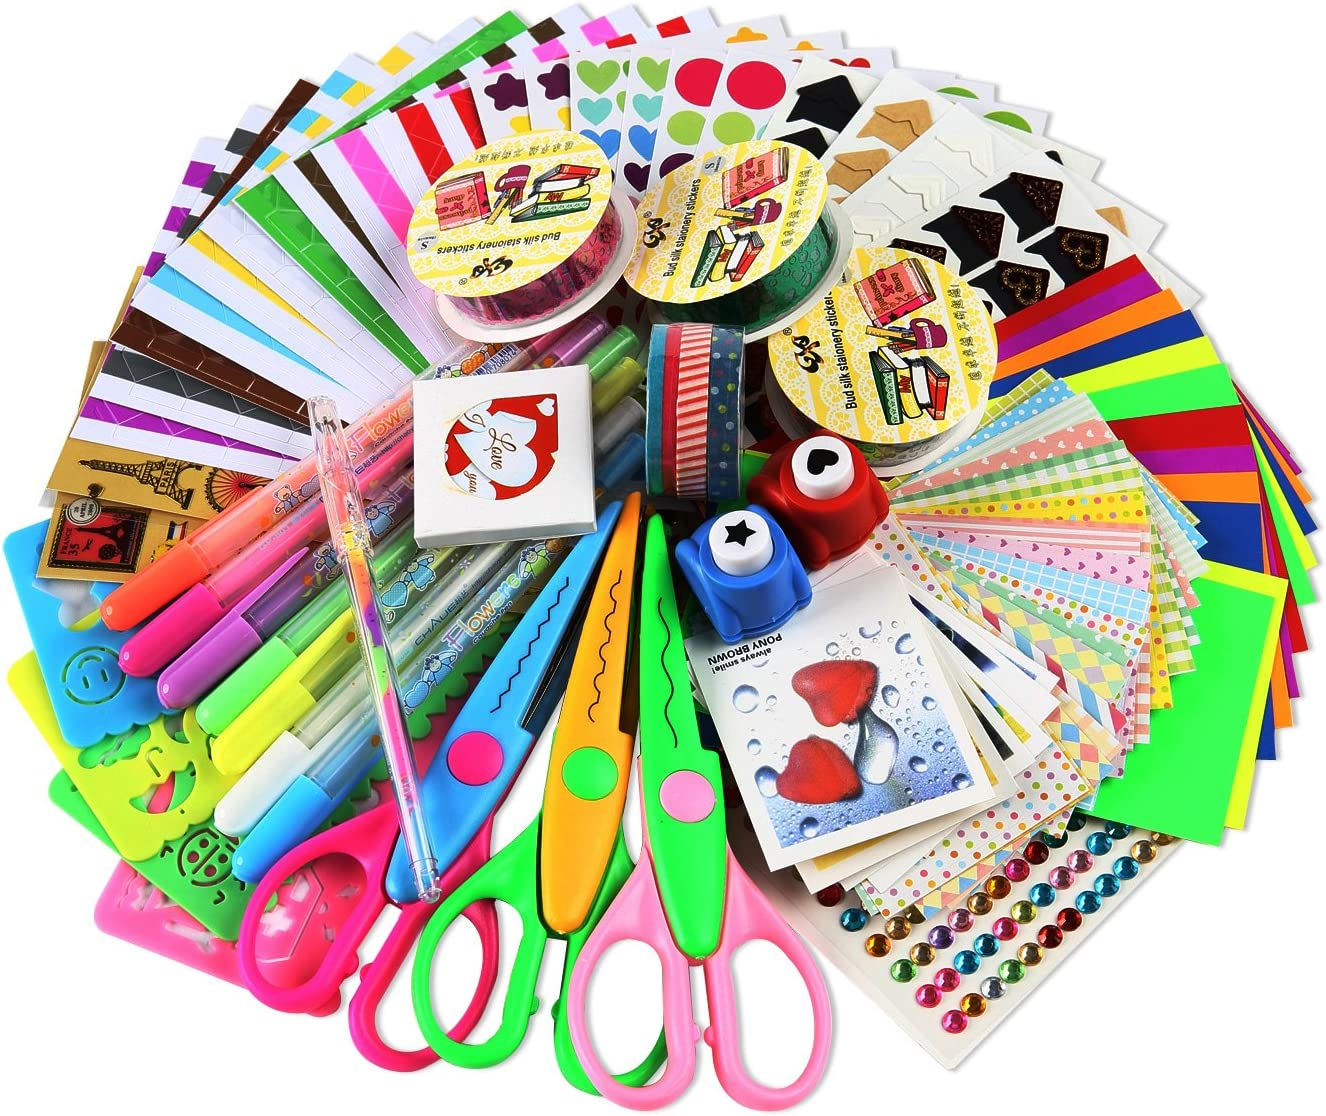 Amazon Com Sicohome Scrapbooking Supplies Scrapbook Kit For Gift Scrapbooking And Card Making